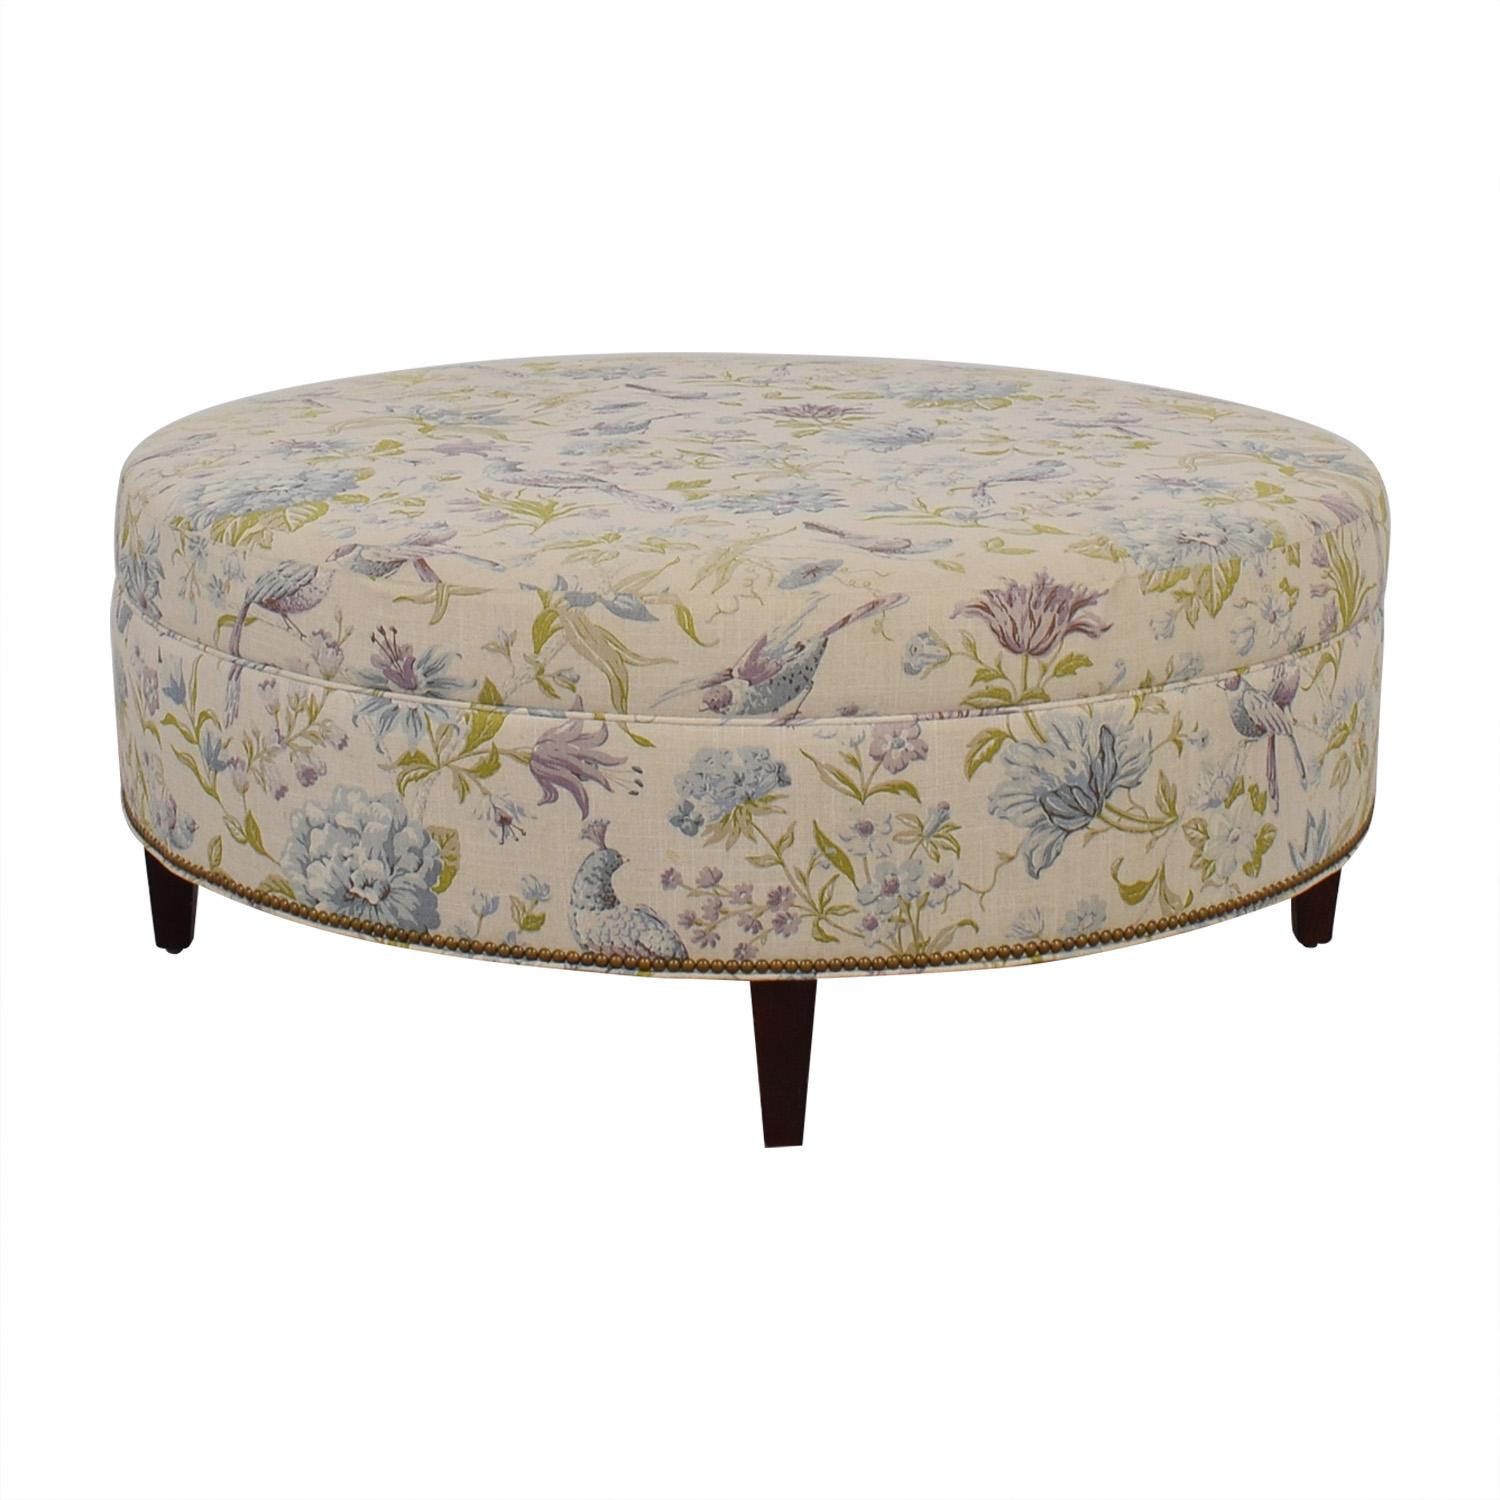 Custom Floral and Bird Upholstered Ottoman price